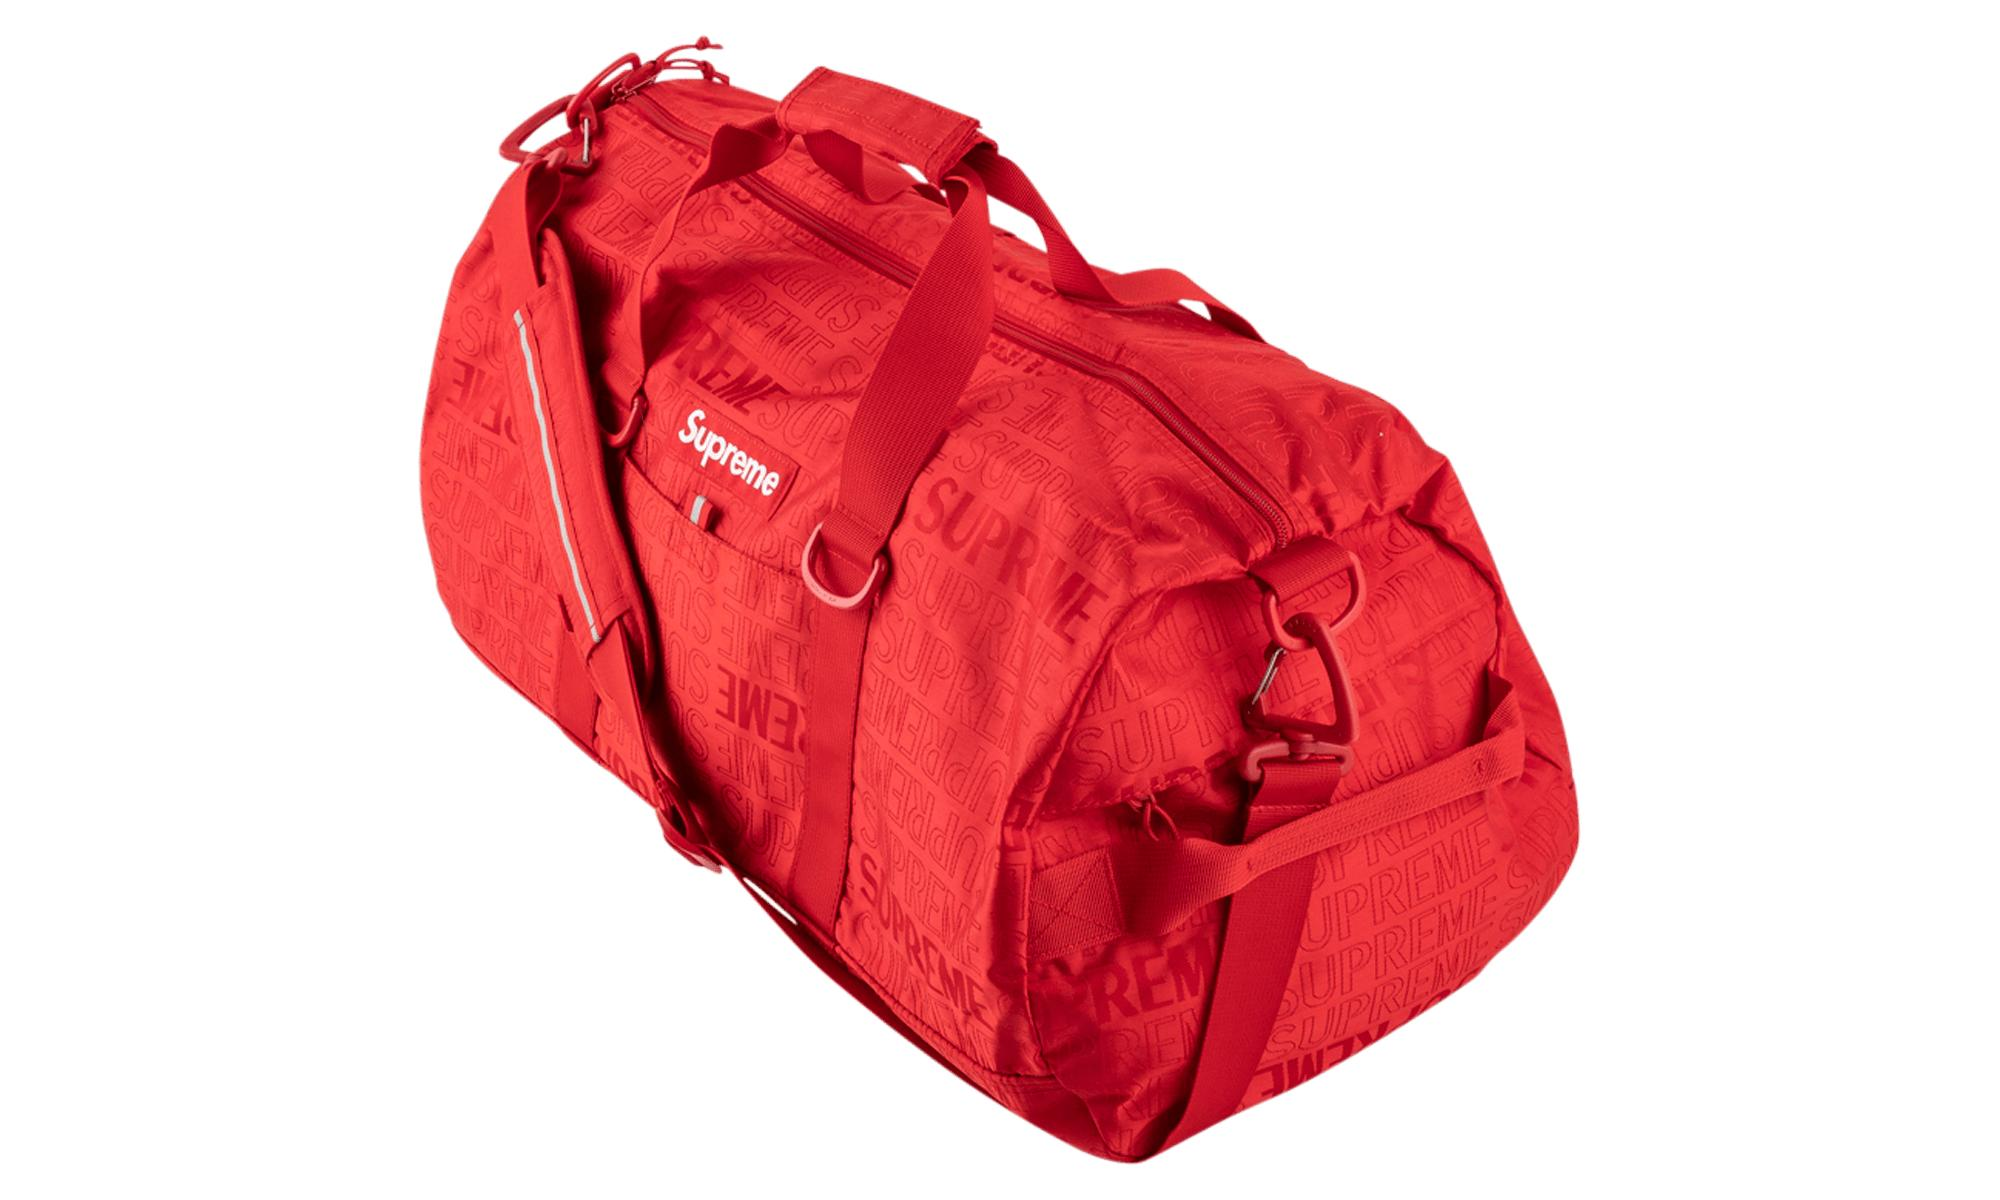 d4087754d802 Supreme - Red Duffle Bag for Men - Lyst. View fullscreen